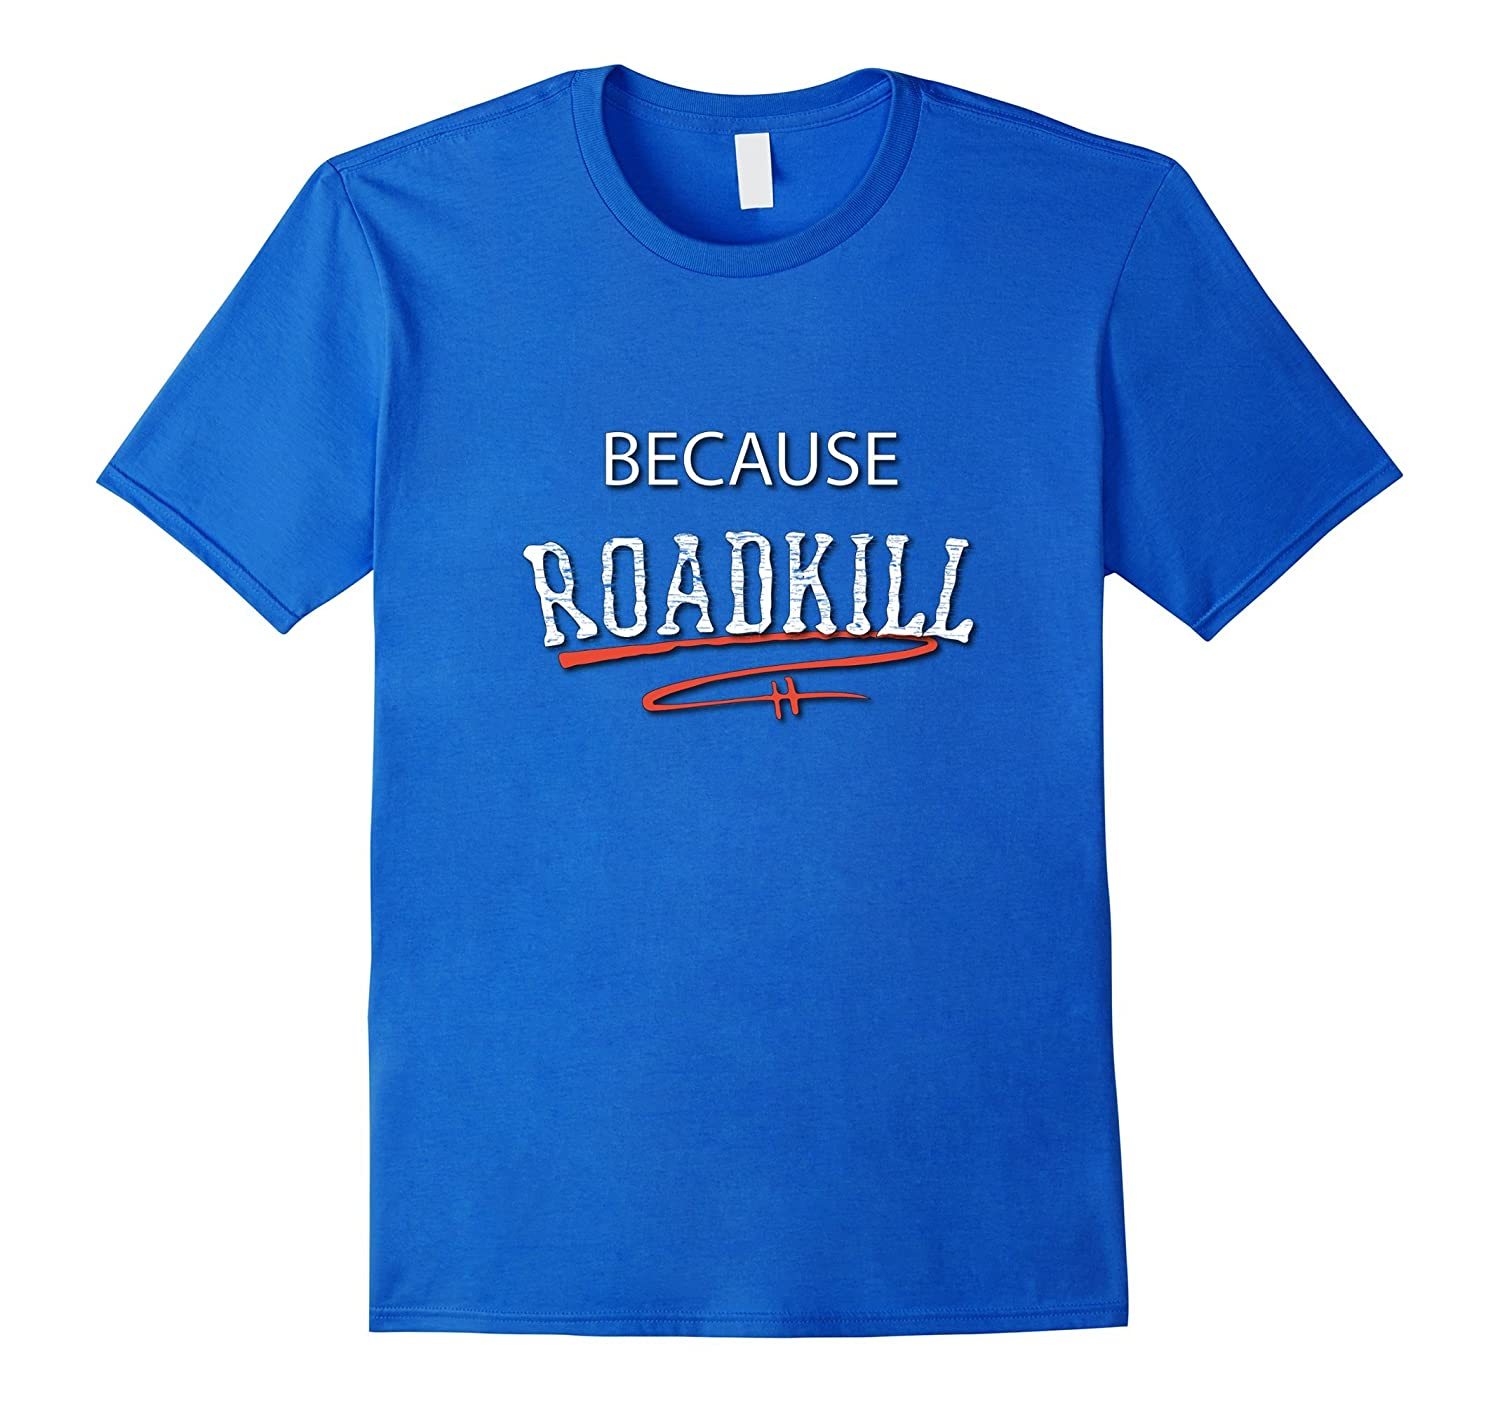 Because Roadkill T-shirt